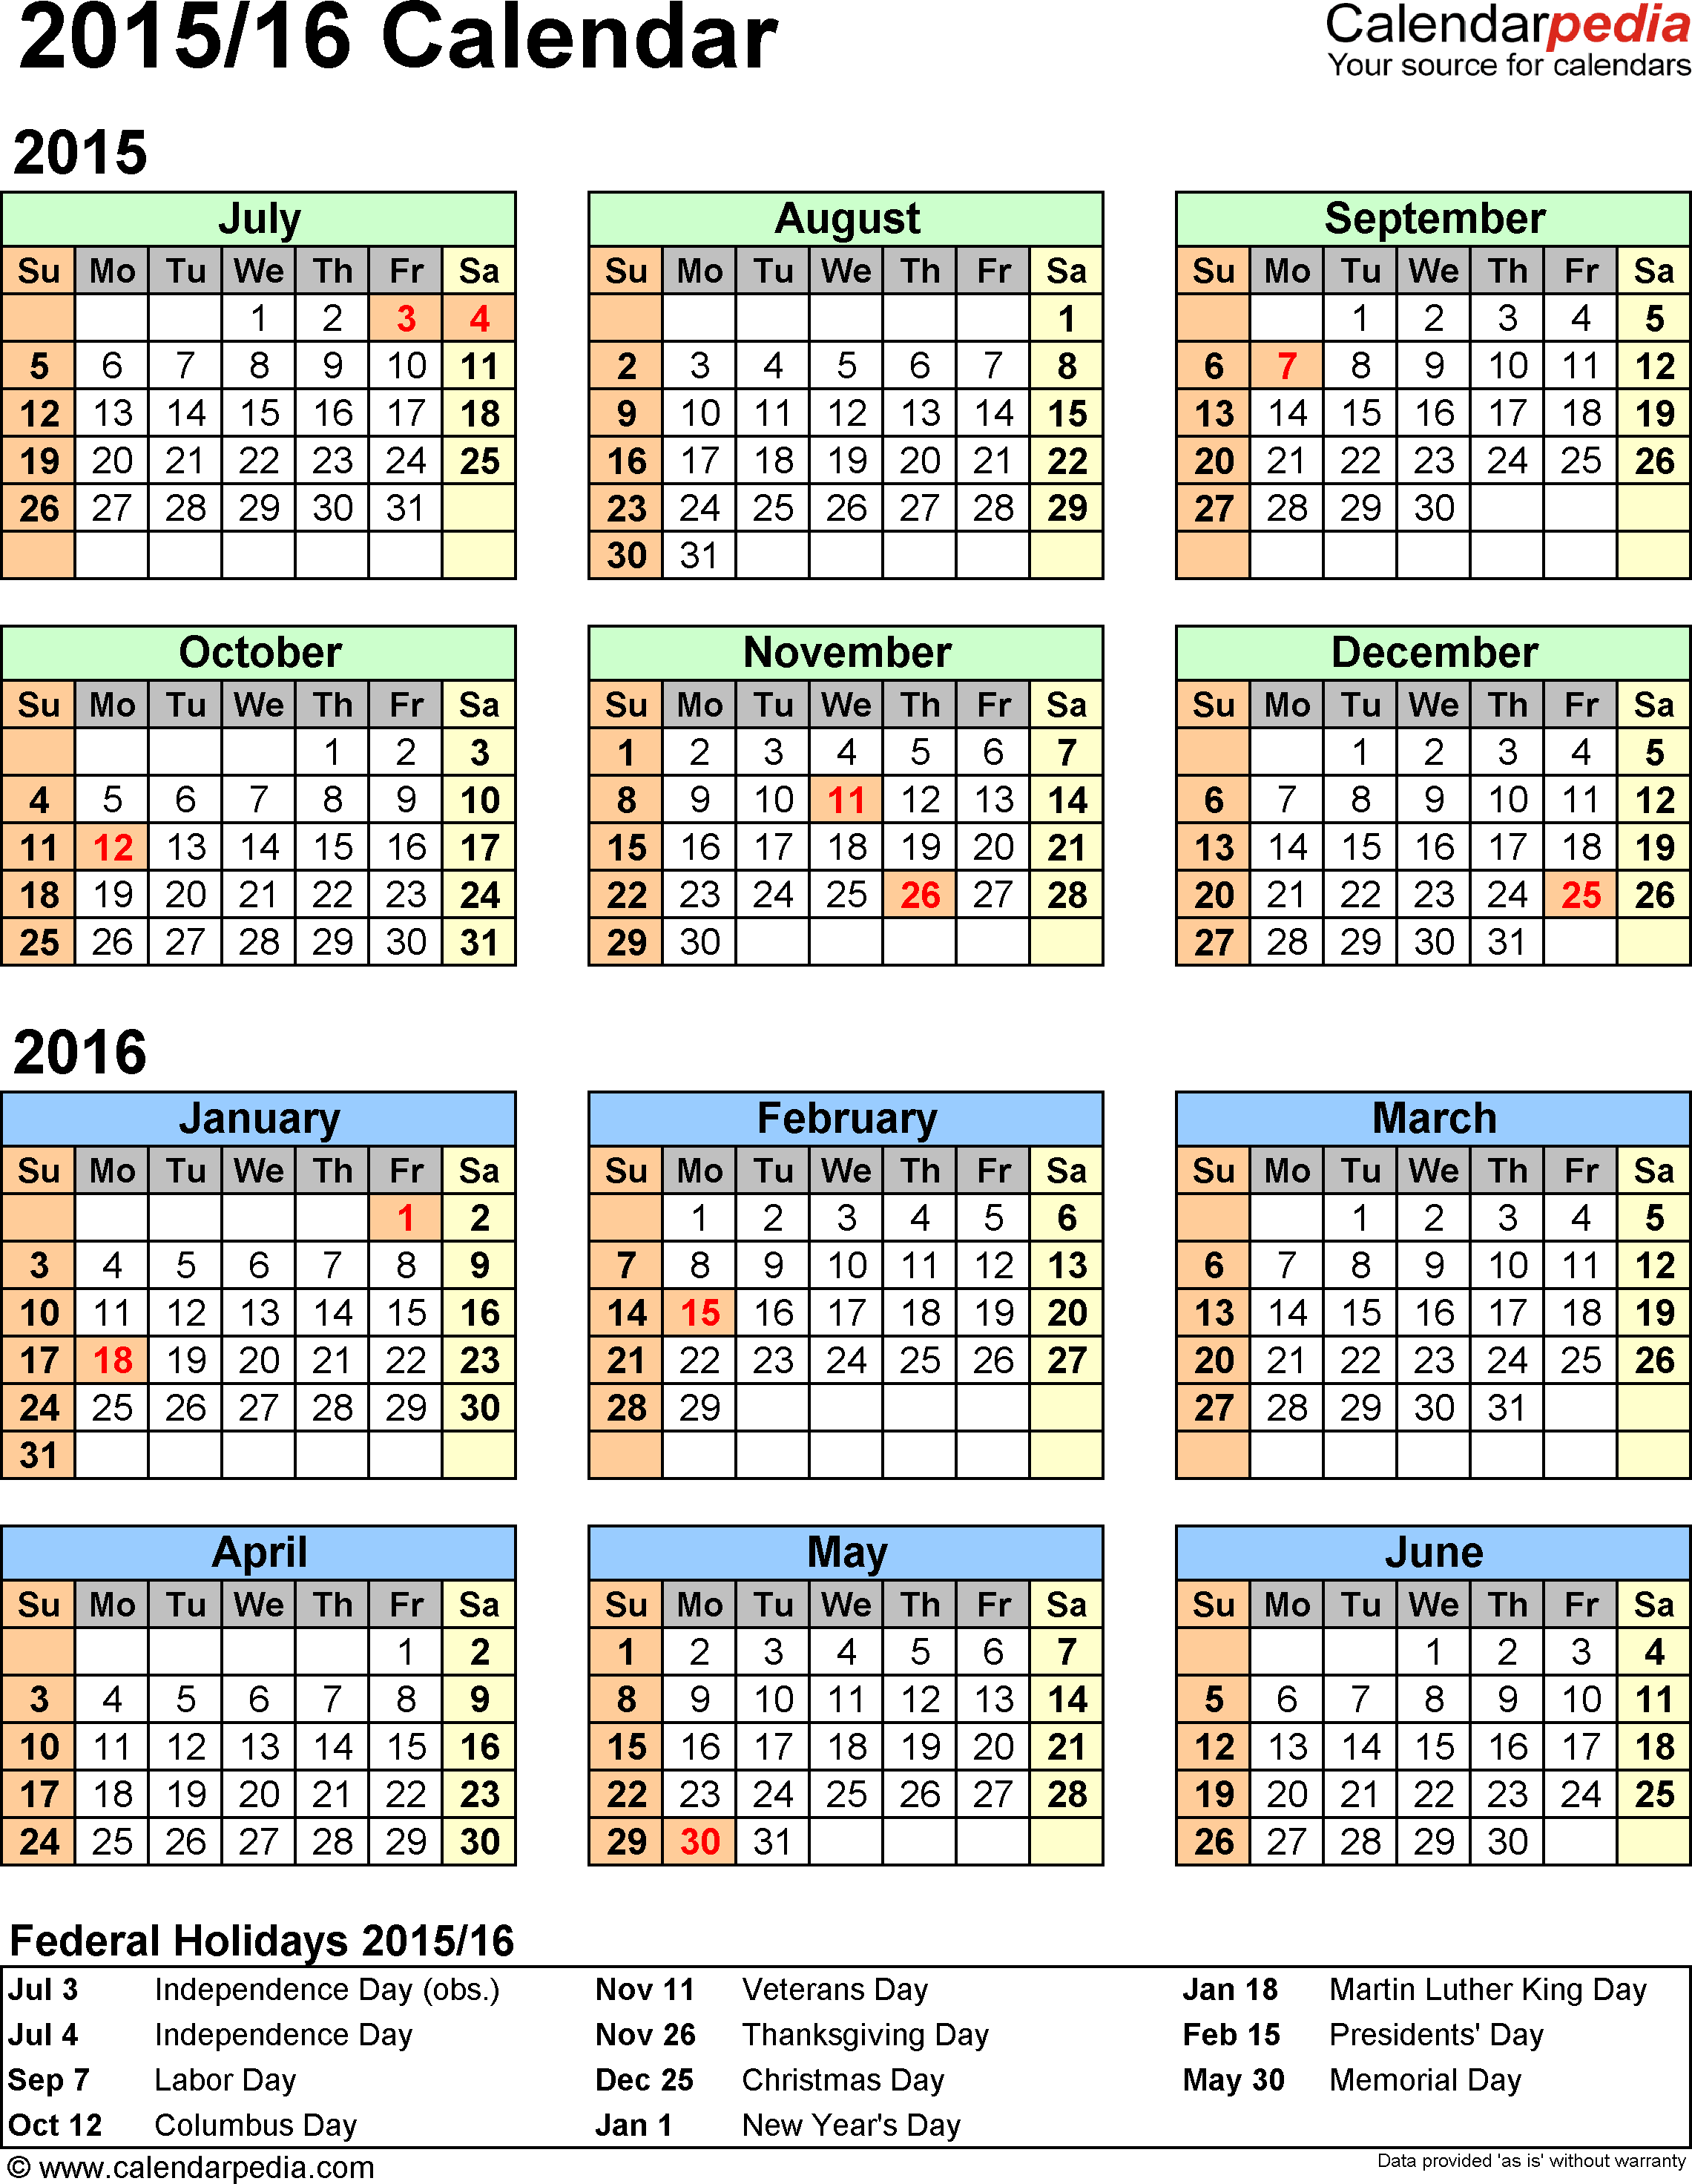 Split year calendar 2015/16 - printable Word templates